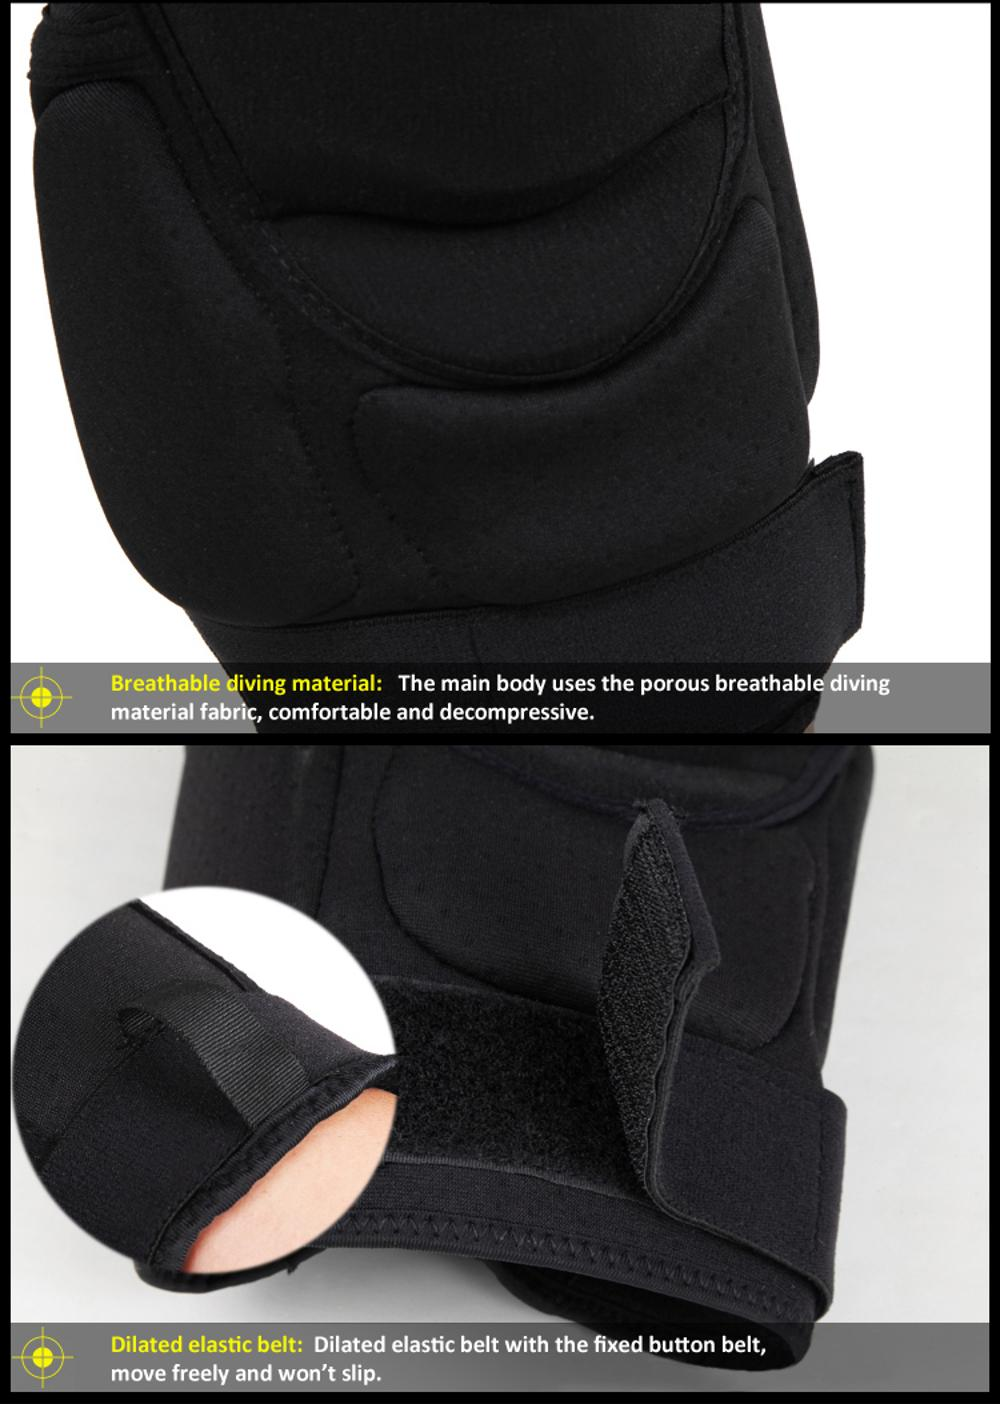 2018 Elbow sleeve/elbow pad for multiple sports 11